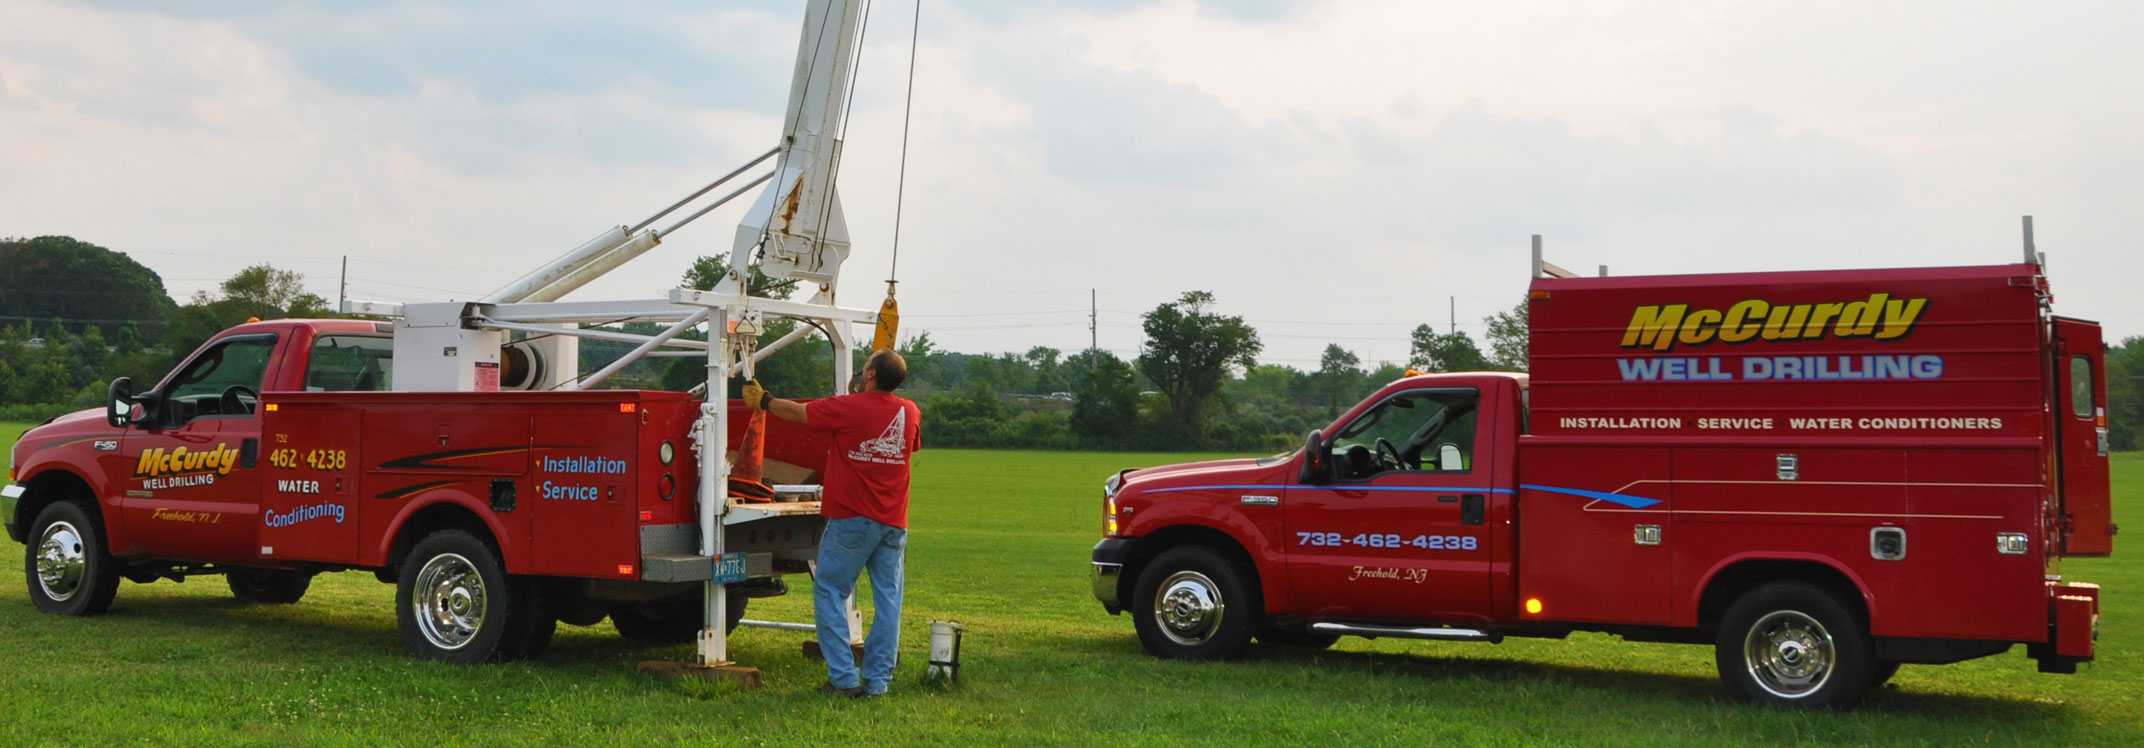 Pump Services - McCurdy Well Drilling